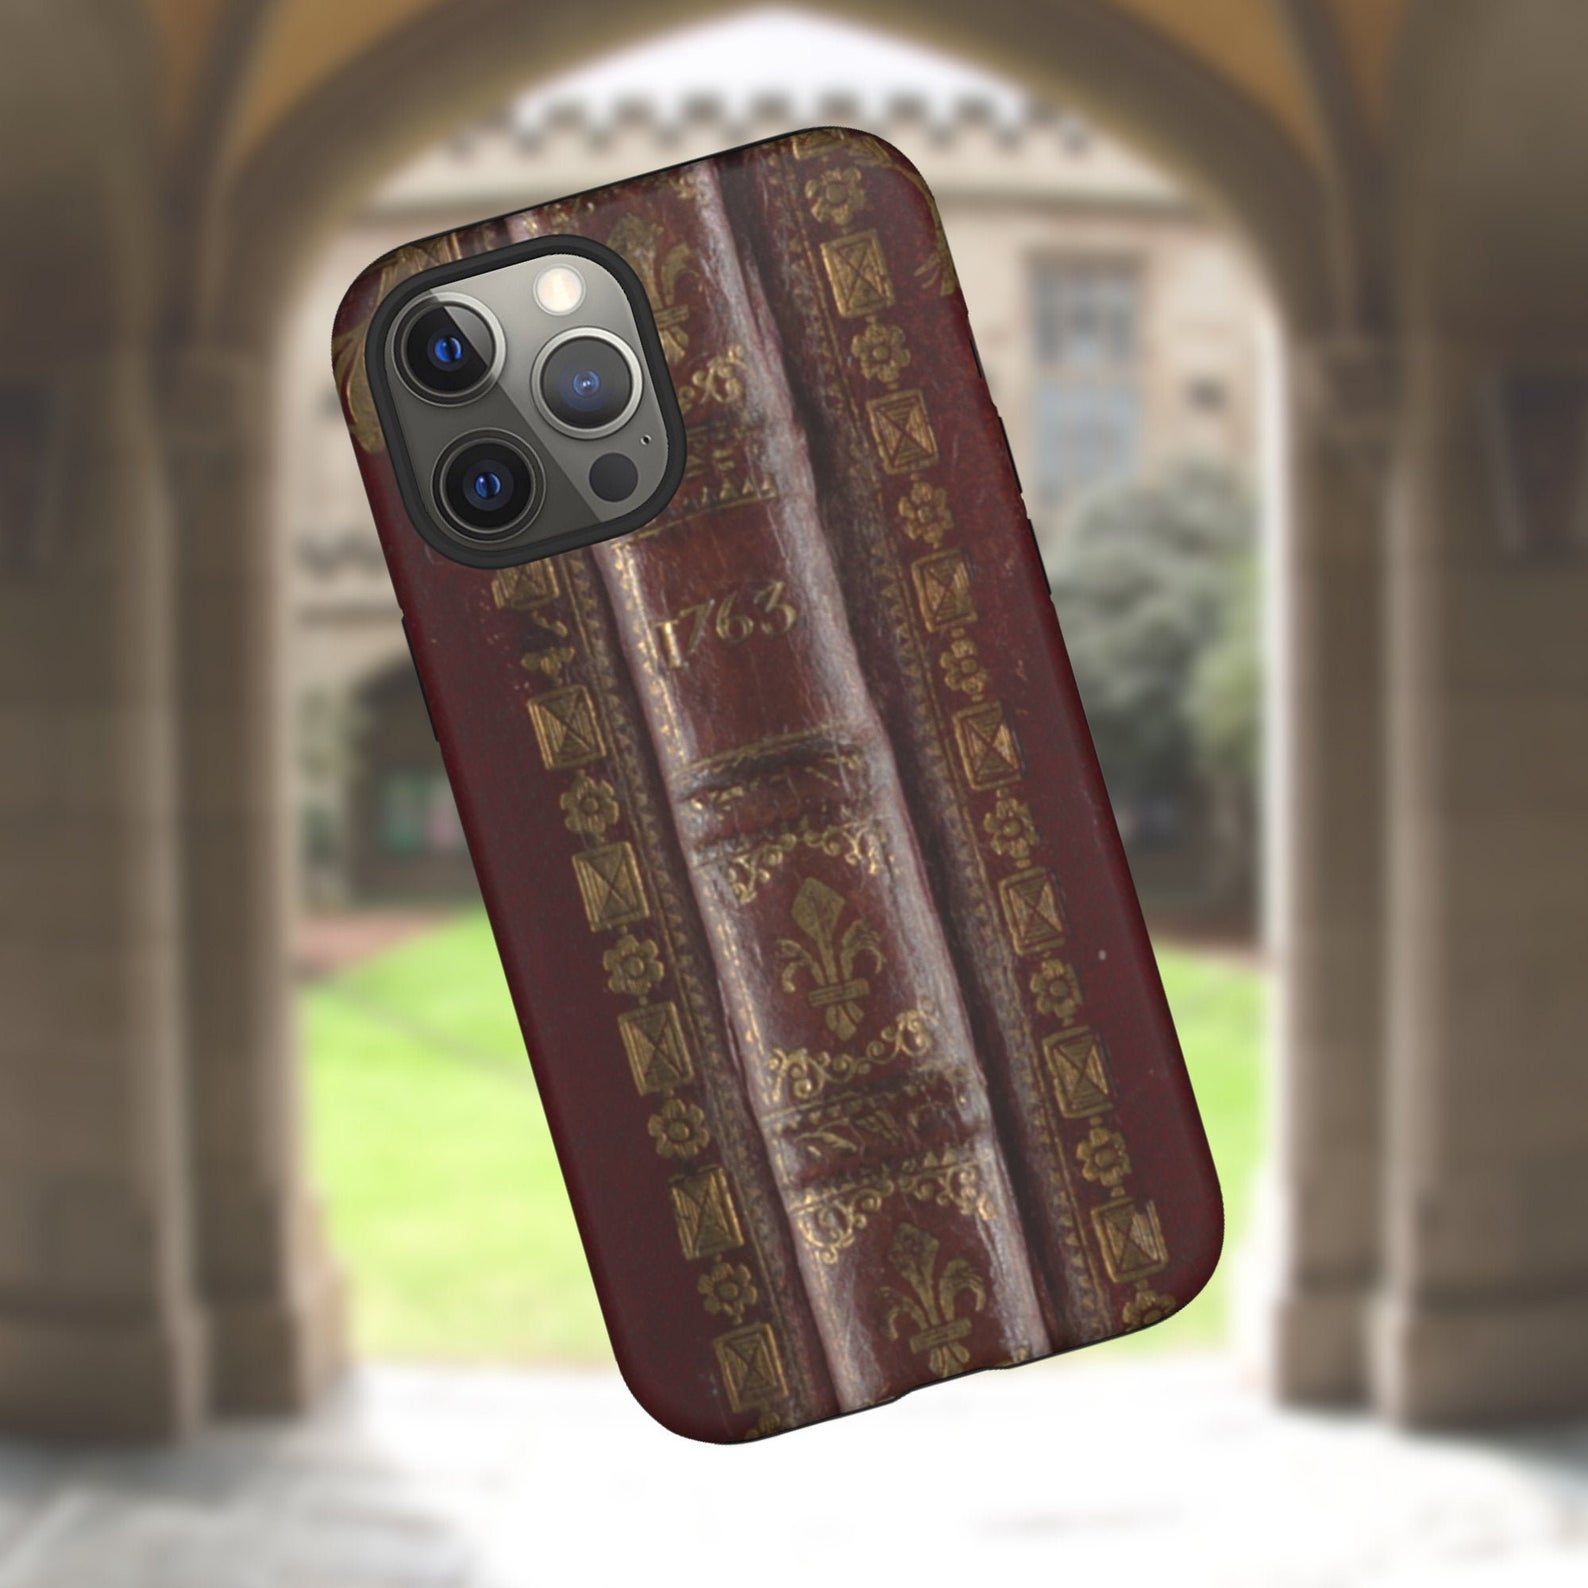 Image of a phone case featuring an old book spine design.